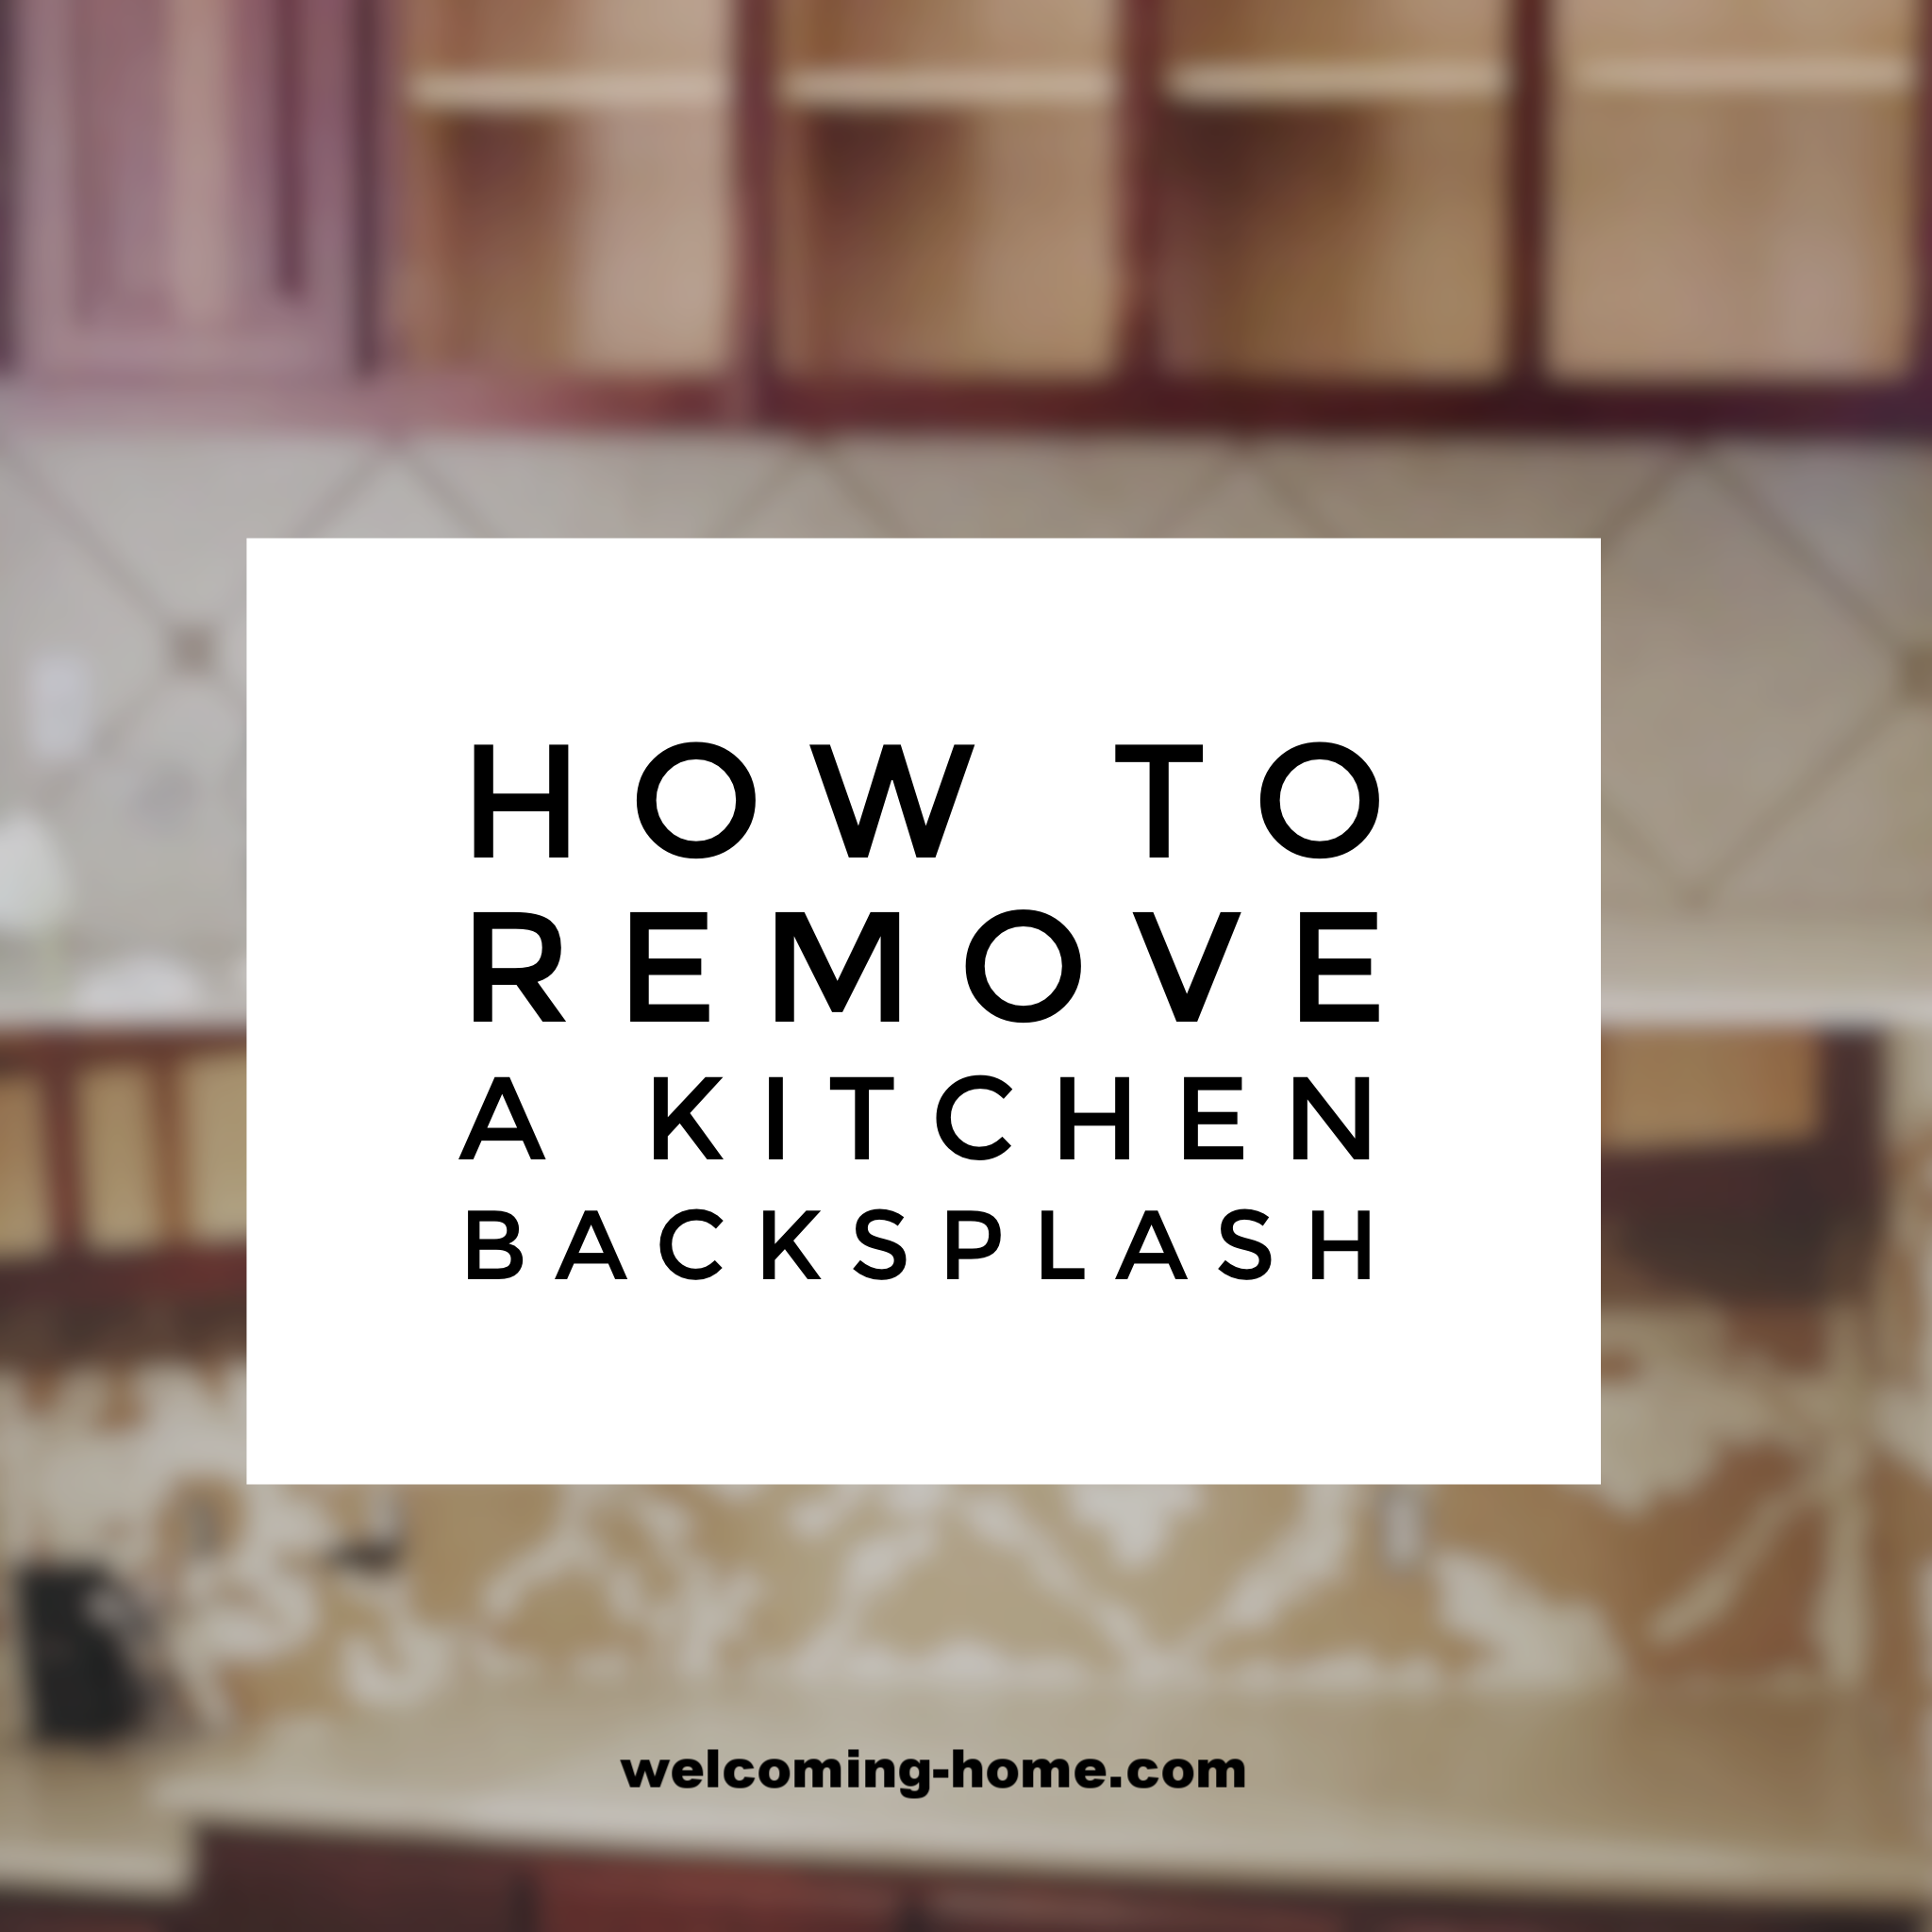 how to remove a kitchen backsplash facebook.PNG